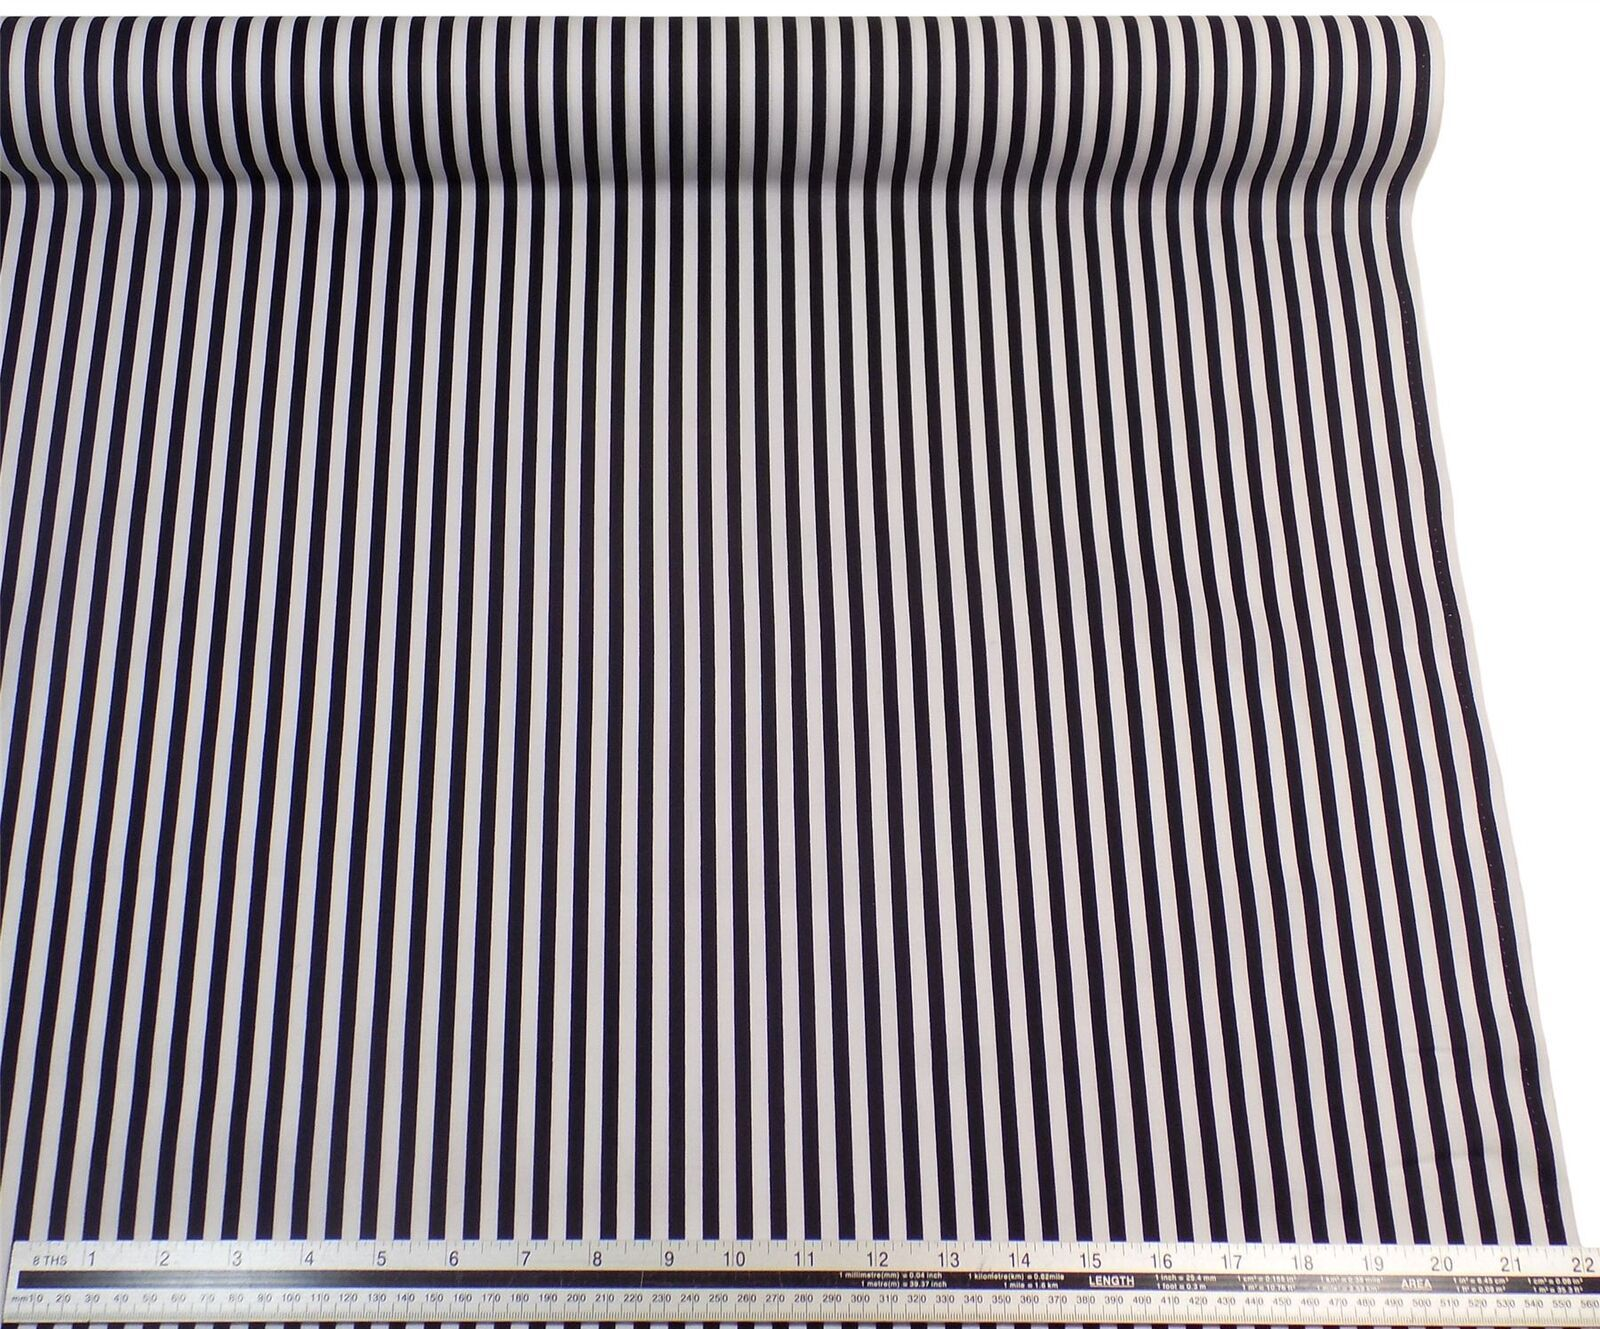 Black White Stripe 100% Cotton High Quality Fabric Material 3 Sizes